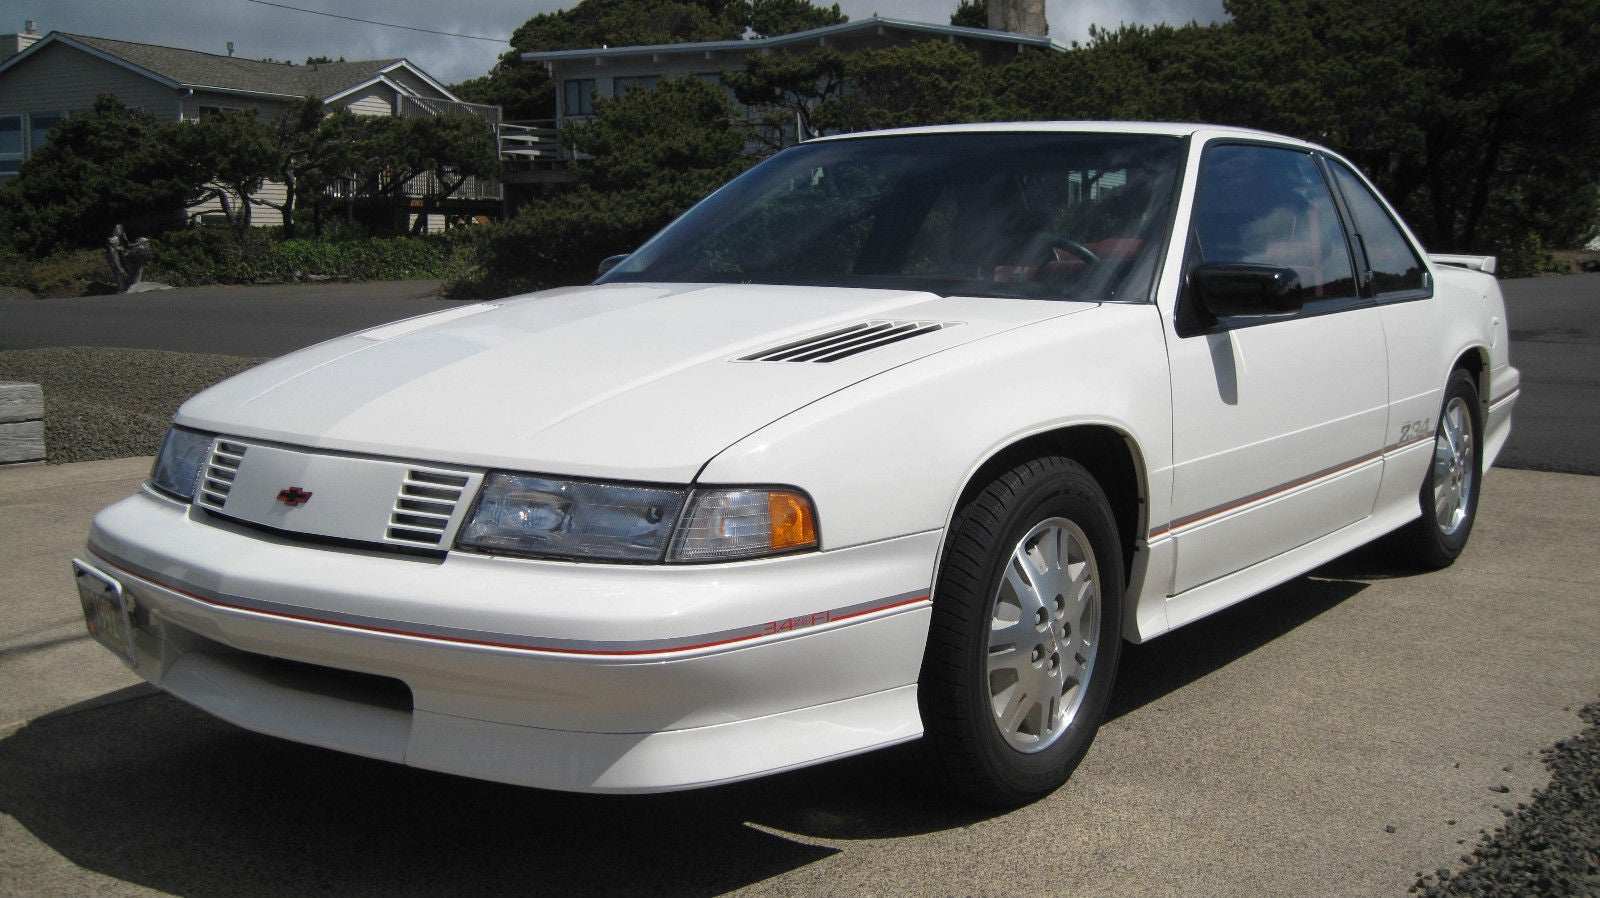 ebay find 1992 chevrolet lumina z34 5 speed manual 13 900 npocp rh oppositelock kinja com 1989 Chevy Lumina 1992 Chevy Lumina